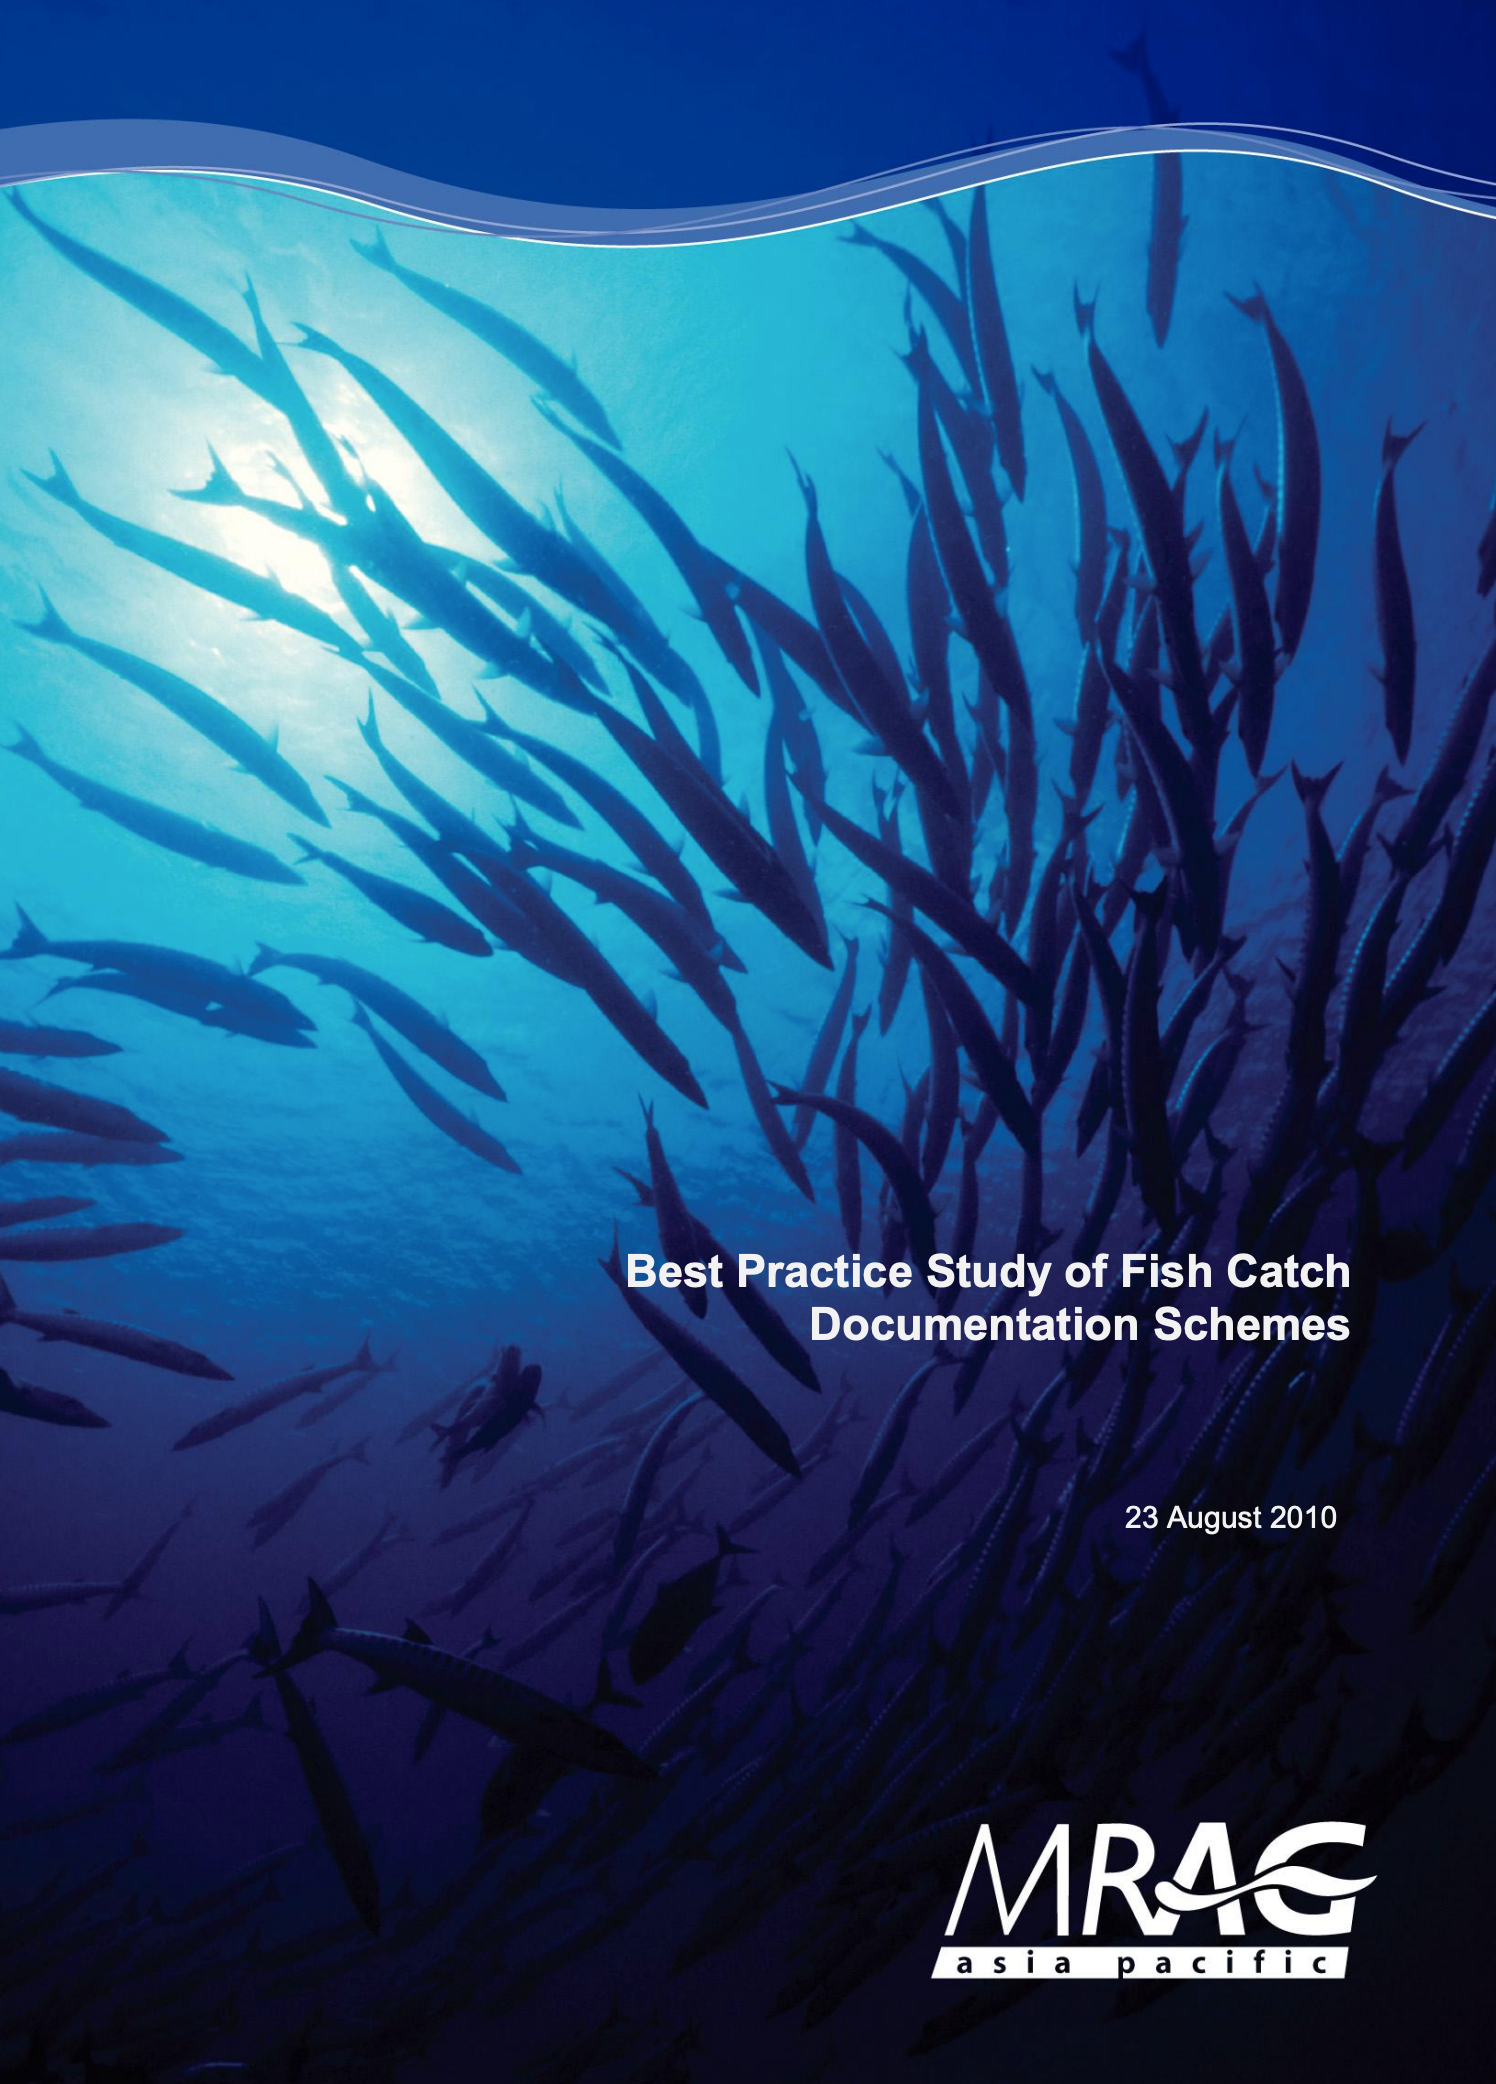 Best Practice Study of Fish Catch Documentation Schemes